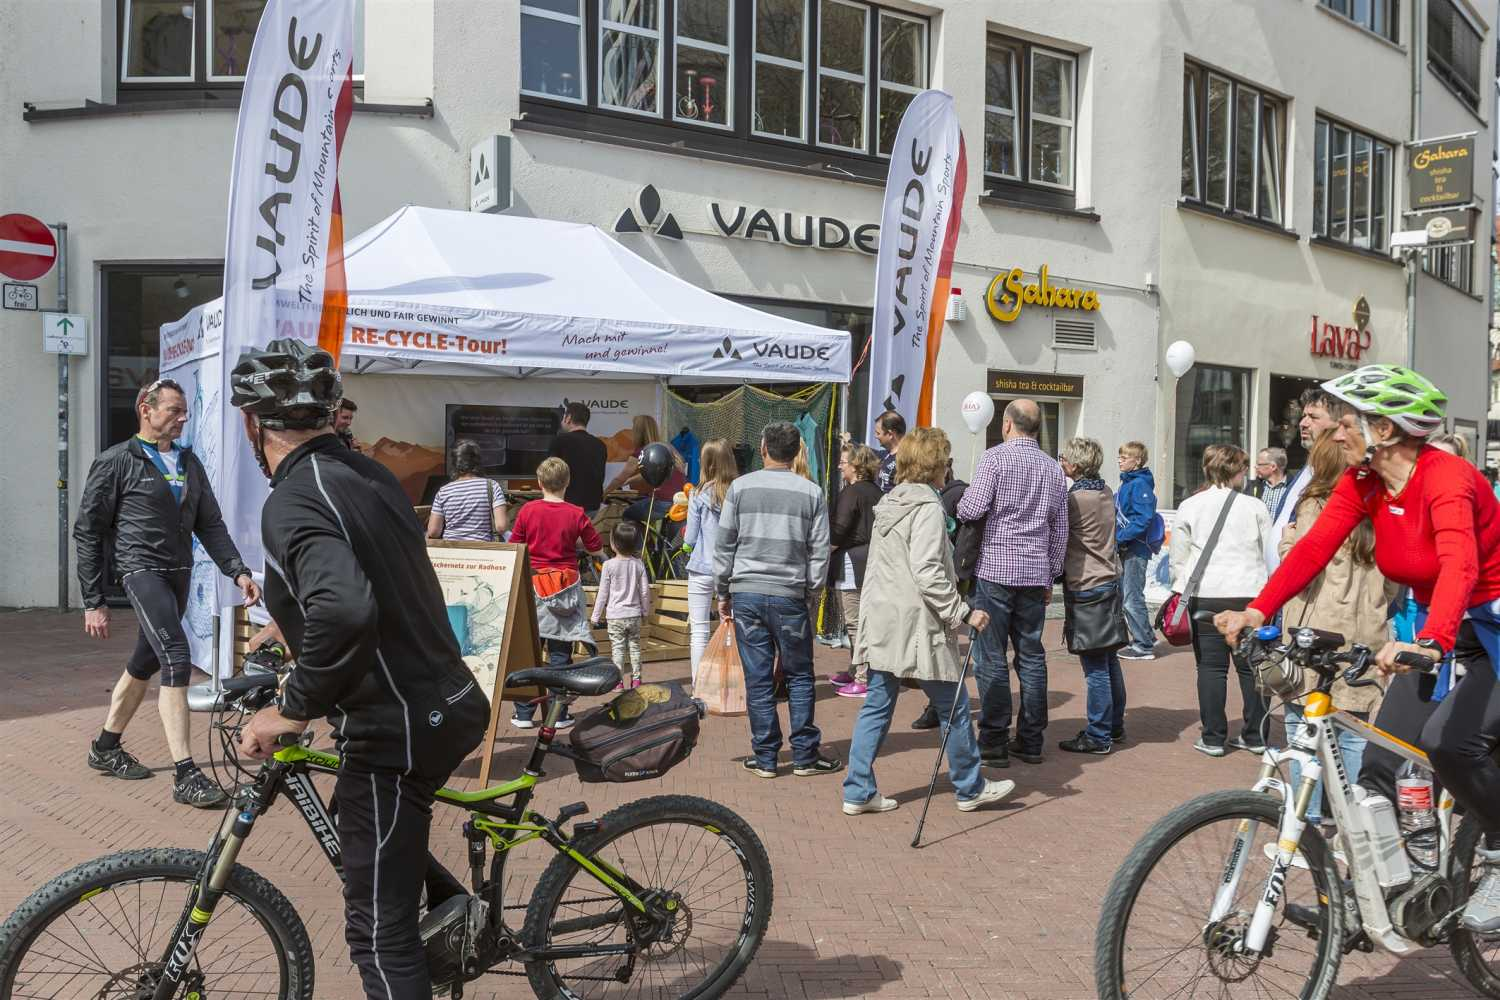 VAUDE_Recycle Tour_Store Ulm_05A8835